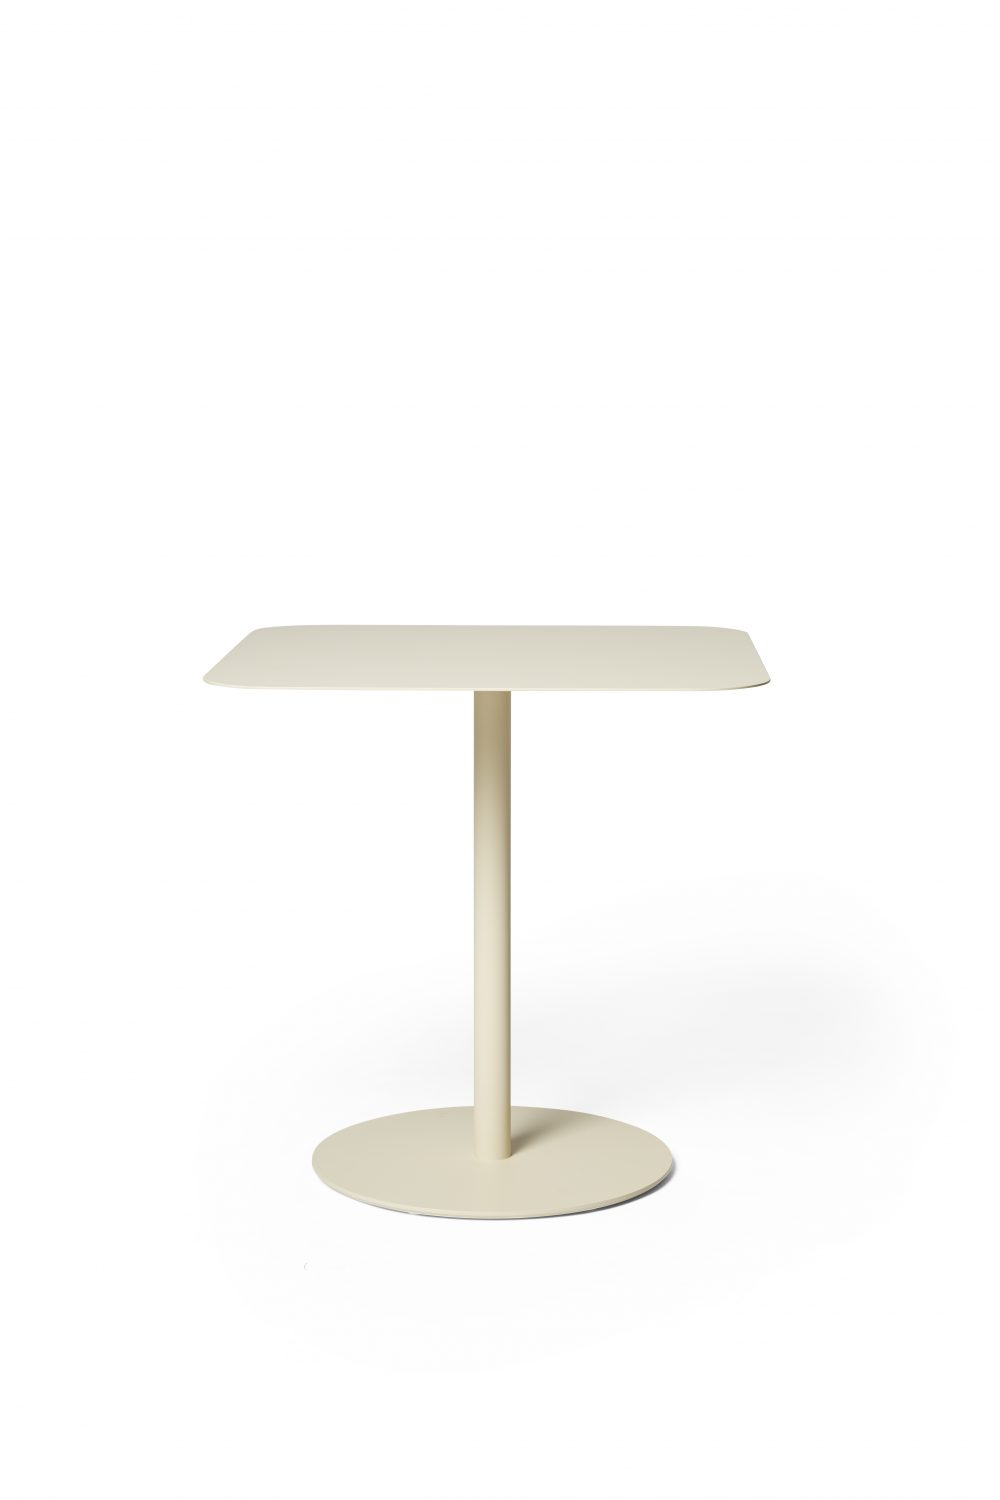 Odette Dining Table Square